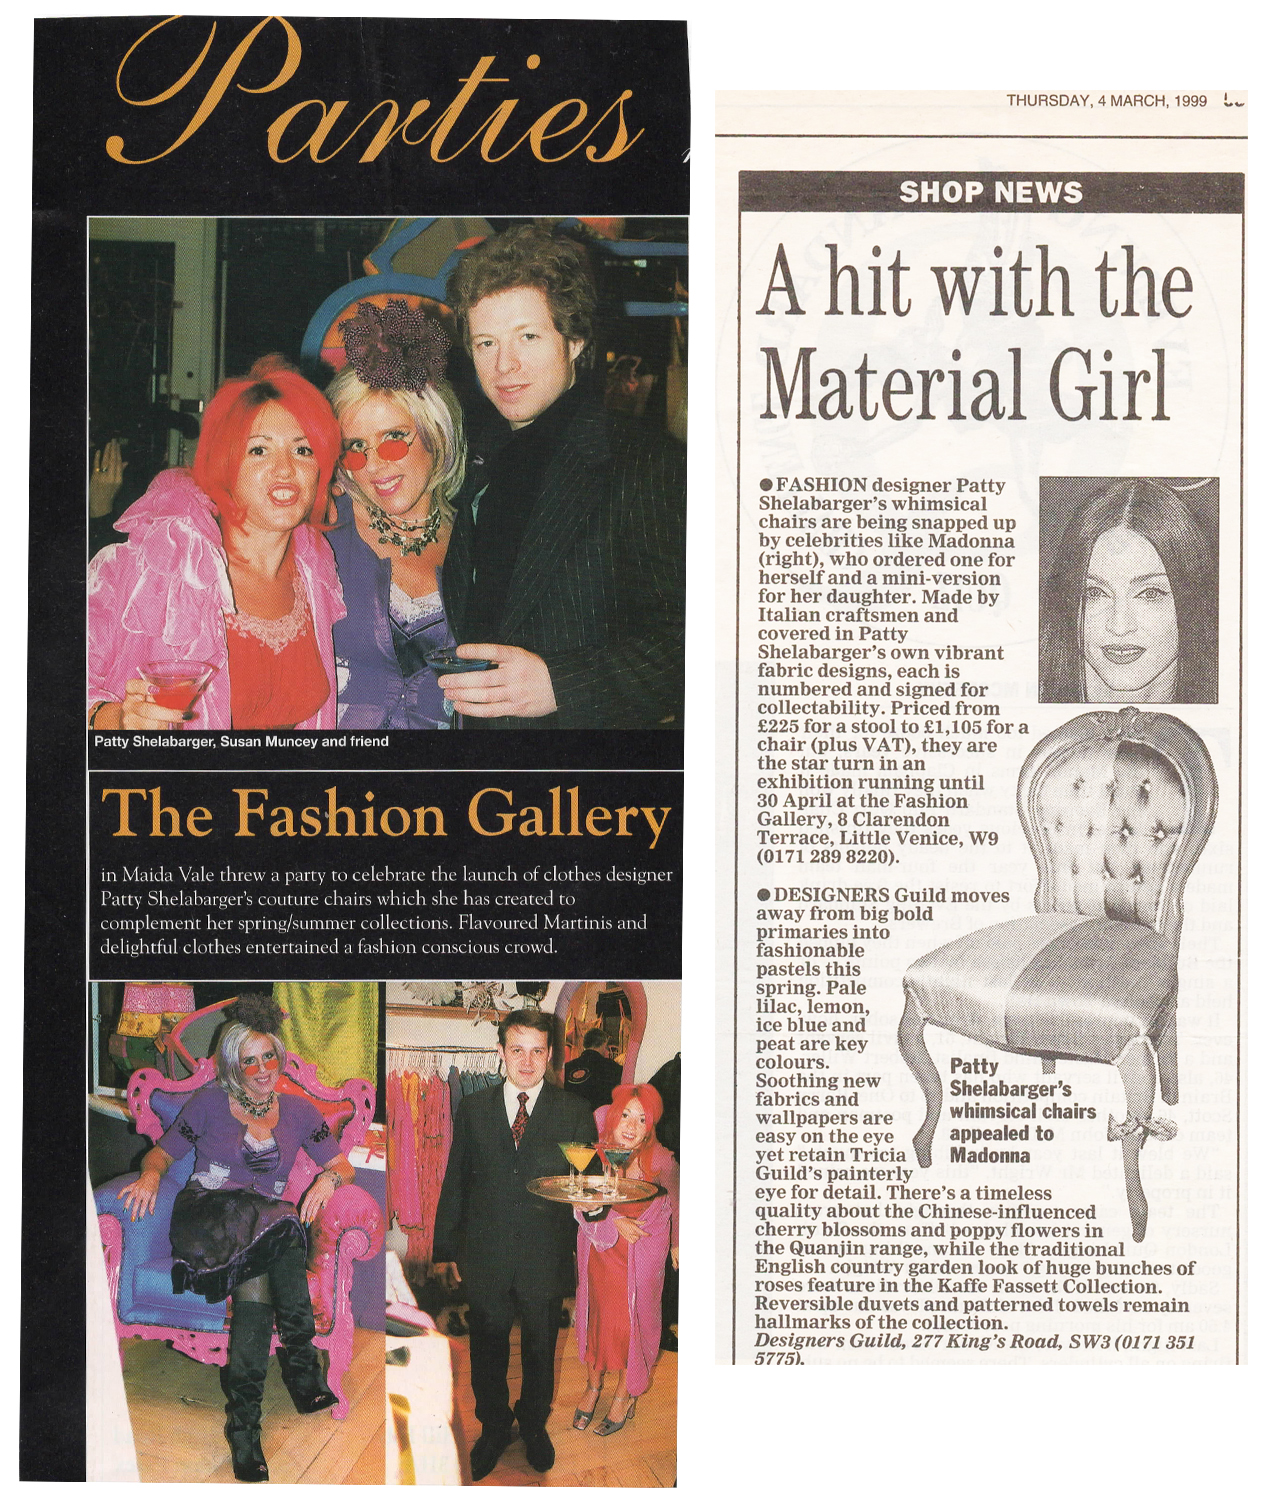 Patty Shelabarger chair exhibition launch party and news.jpg